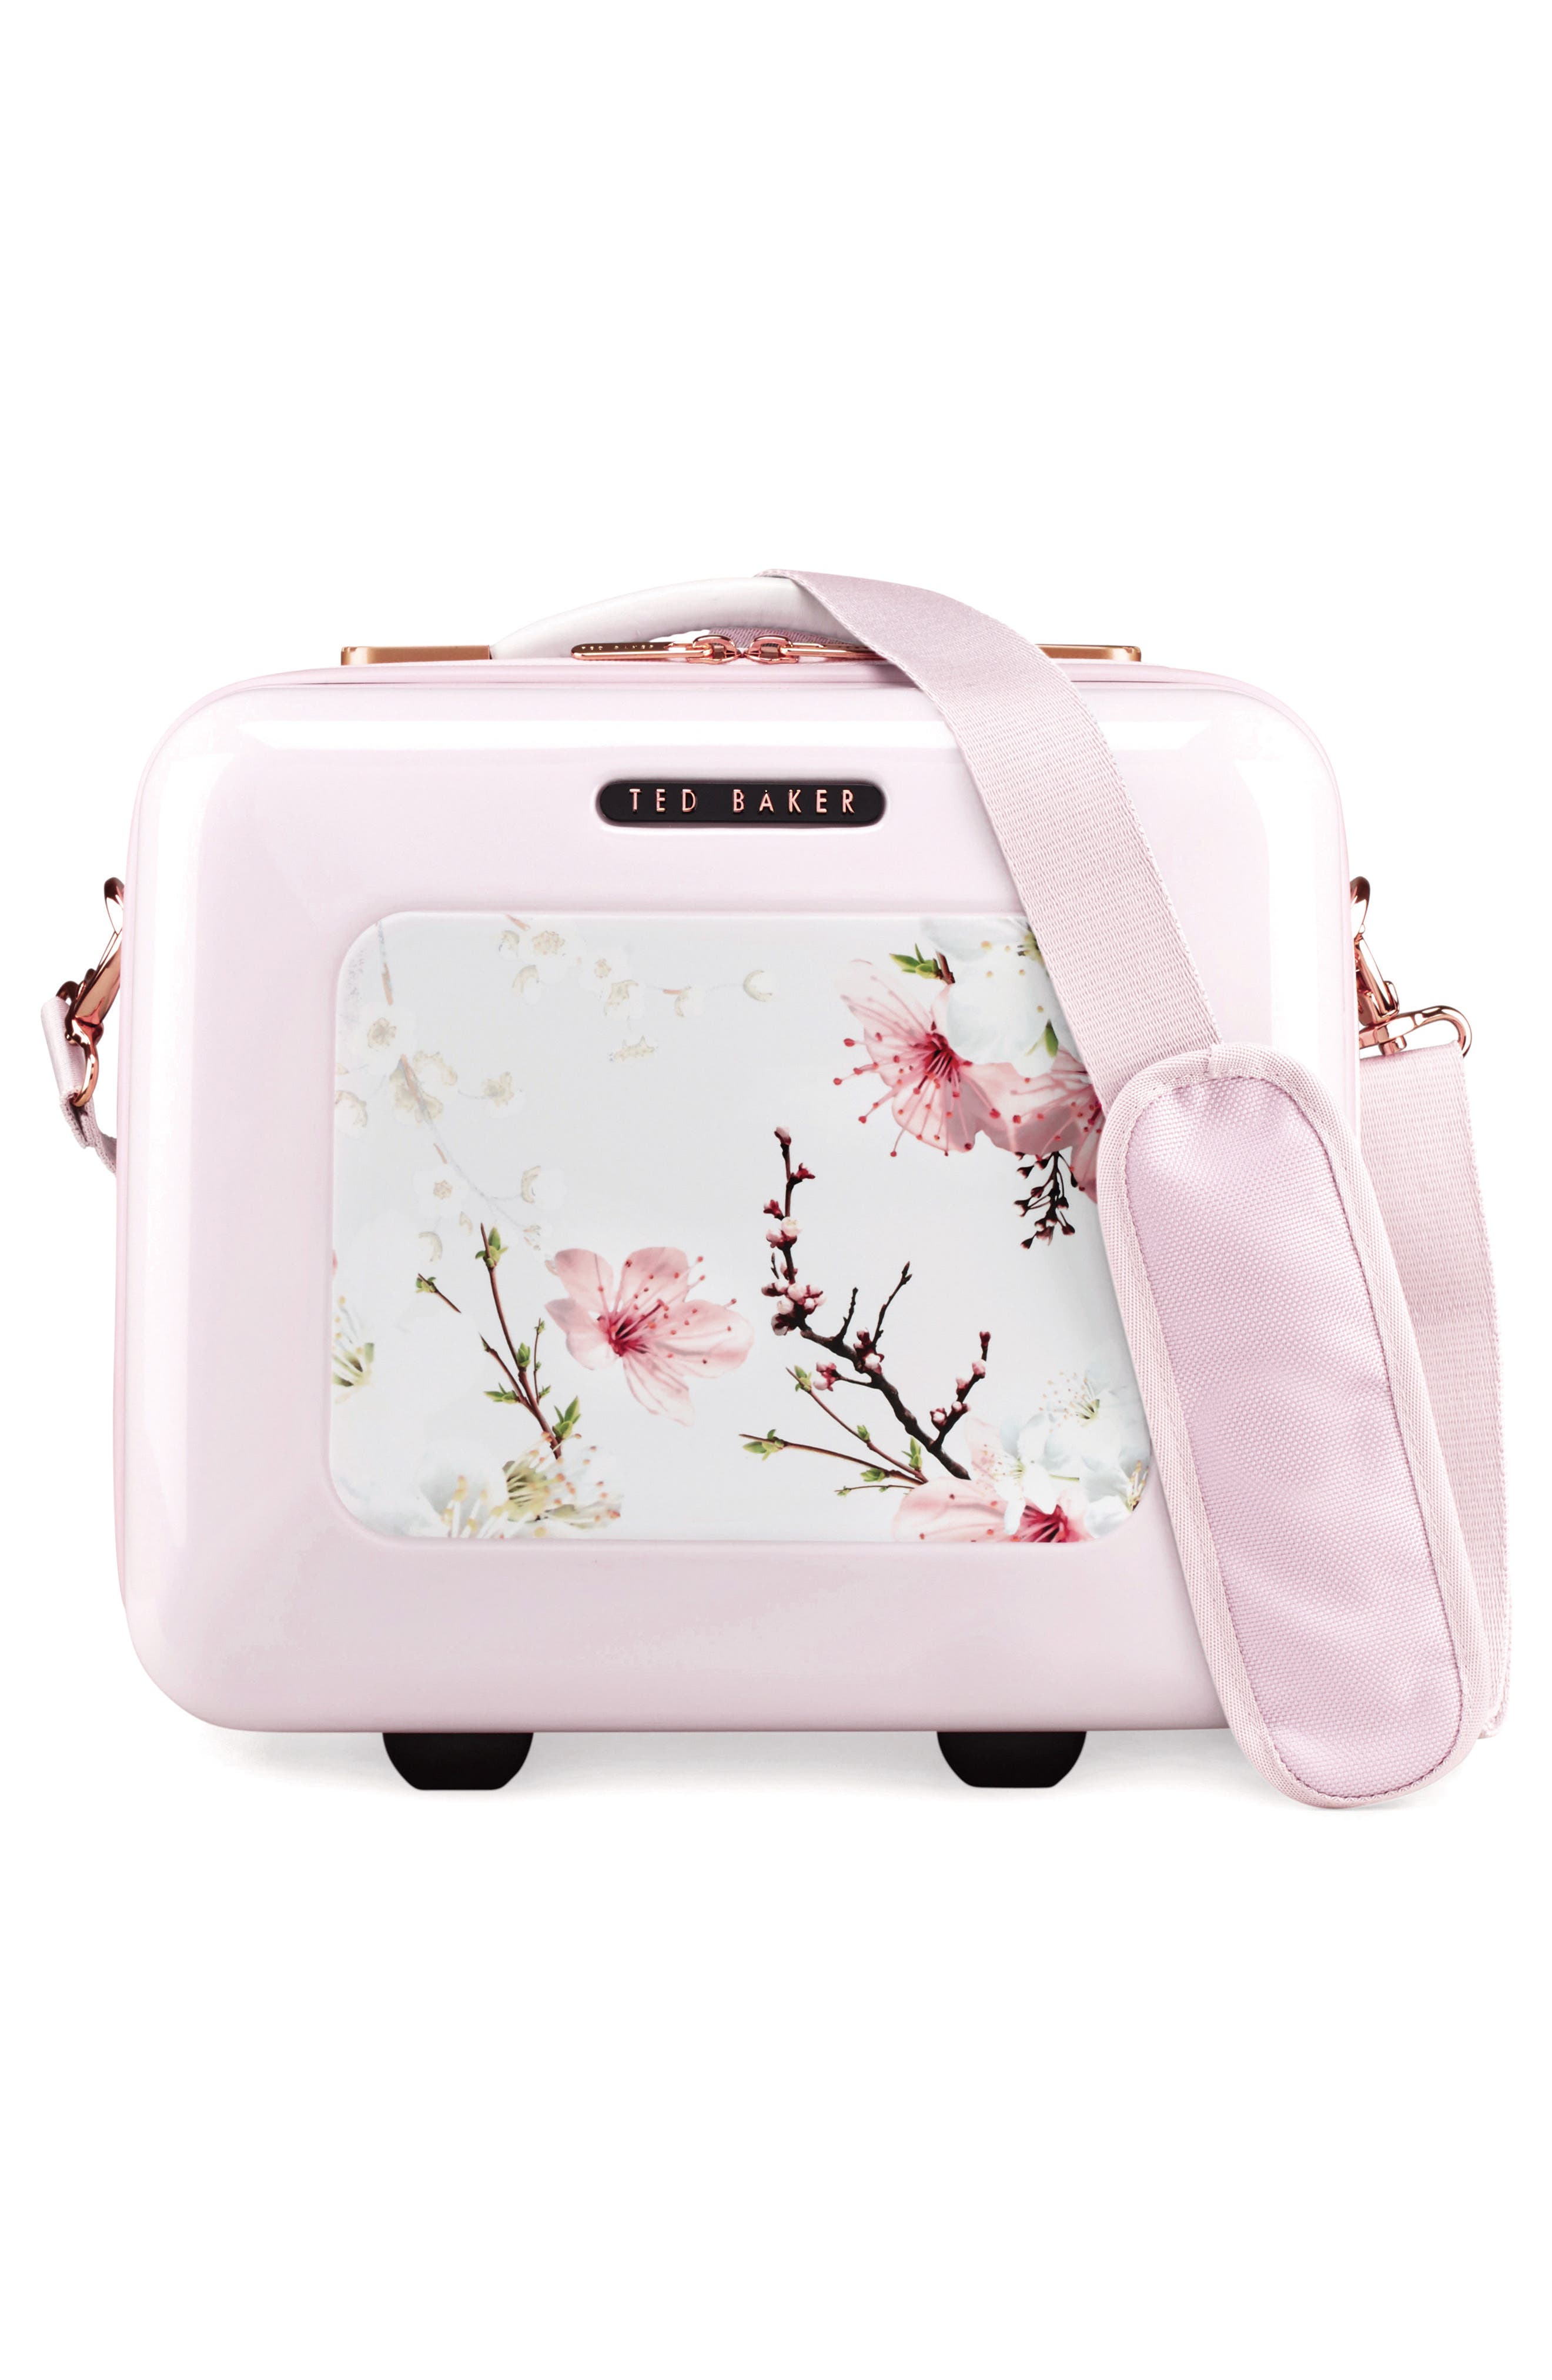 Blossoms Vanity Case,                             Alternate thumbnail 2, color,                             650